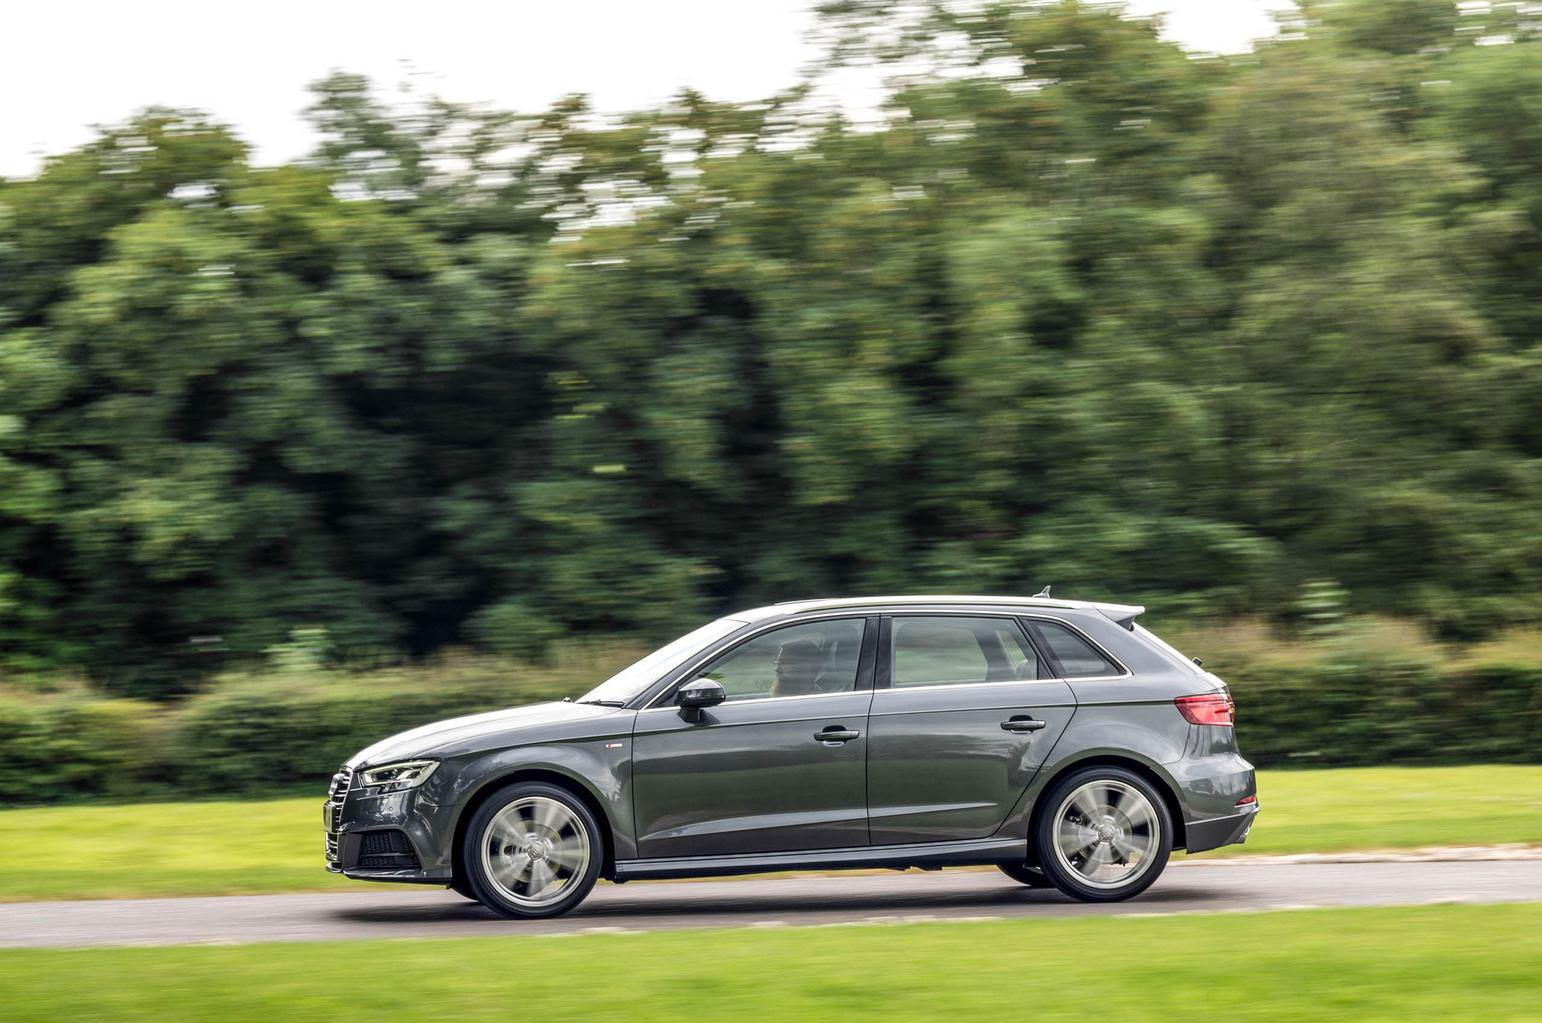 2016 Audi A3 Sportback 2.0 TDI 150 review